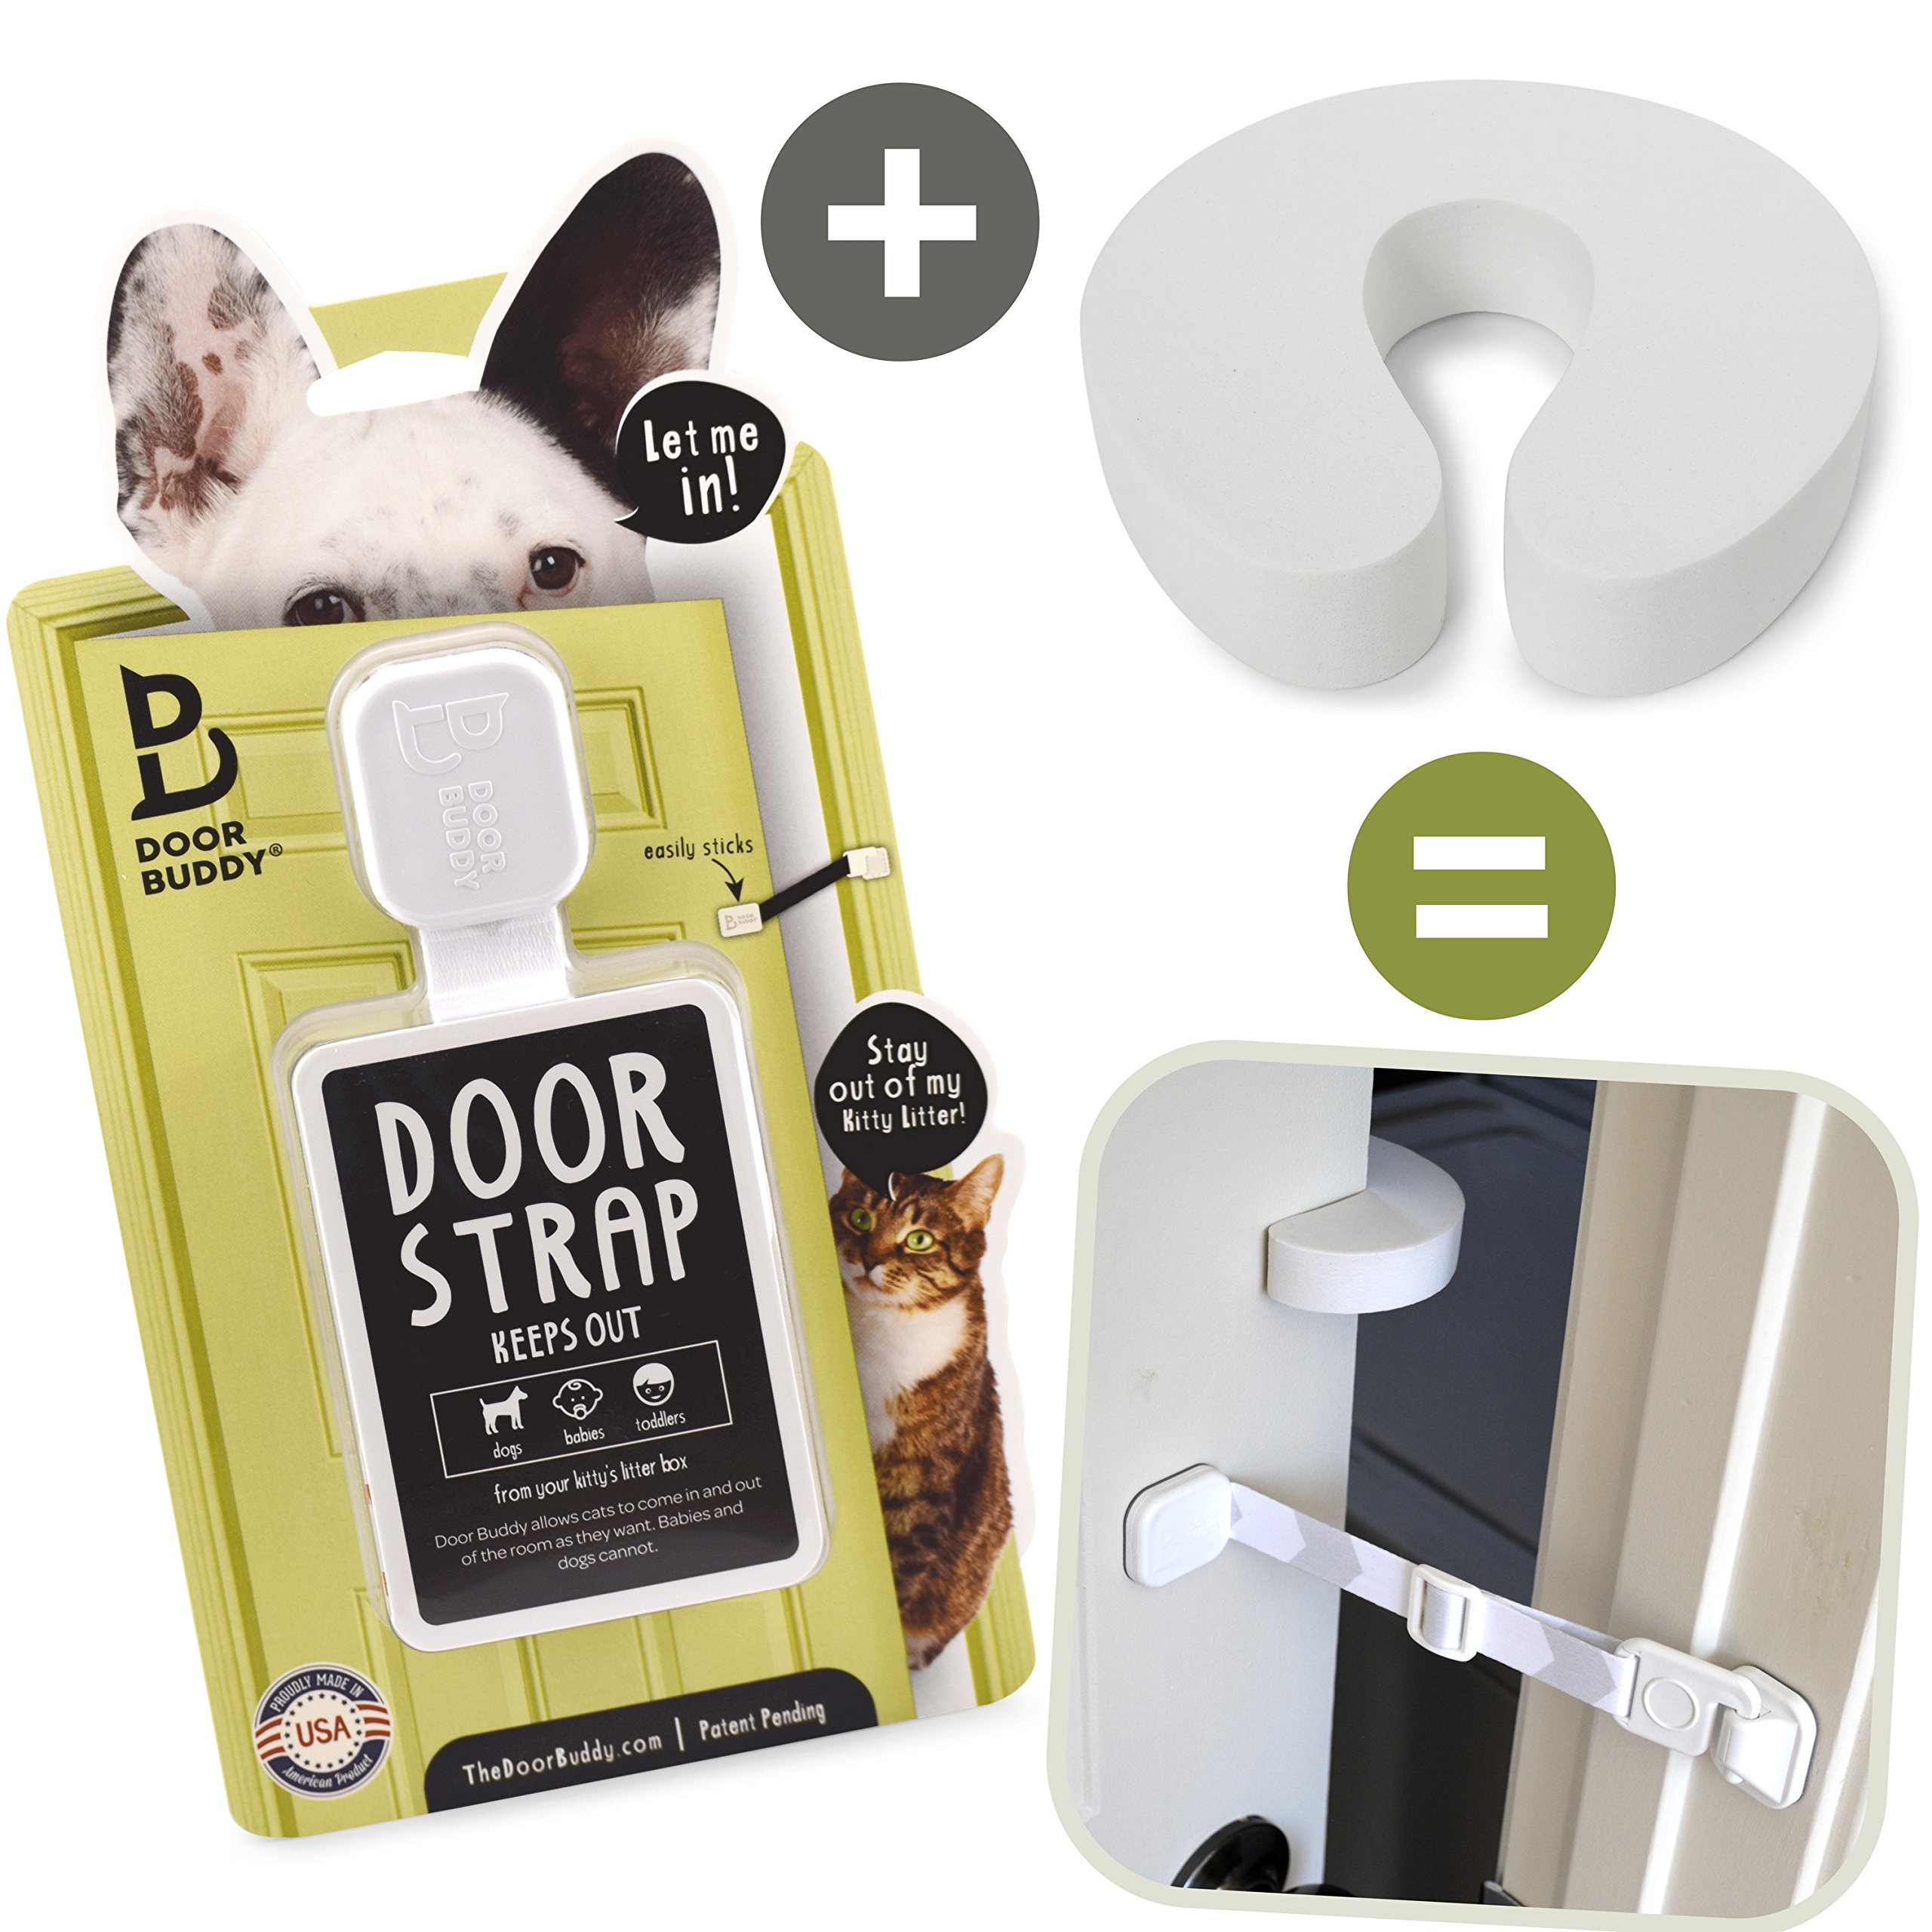 Door Buddy Door Latch Plus Door Stopper. Keep Dog Out of Litter Box and Prevent Door from Closing. This Cat Gate and Cat Door Alternative Installs in Seconds and is Easy for Cats and Adults to Use. by Door Buddy